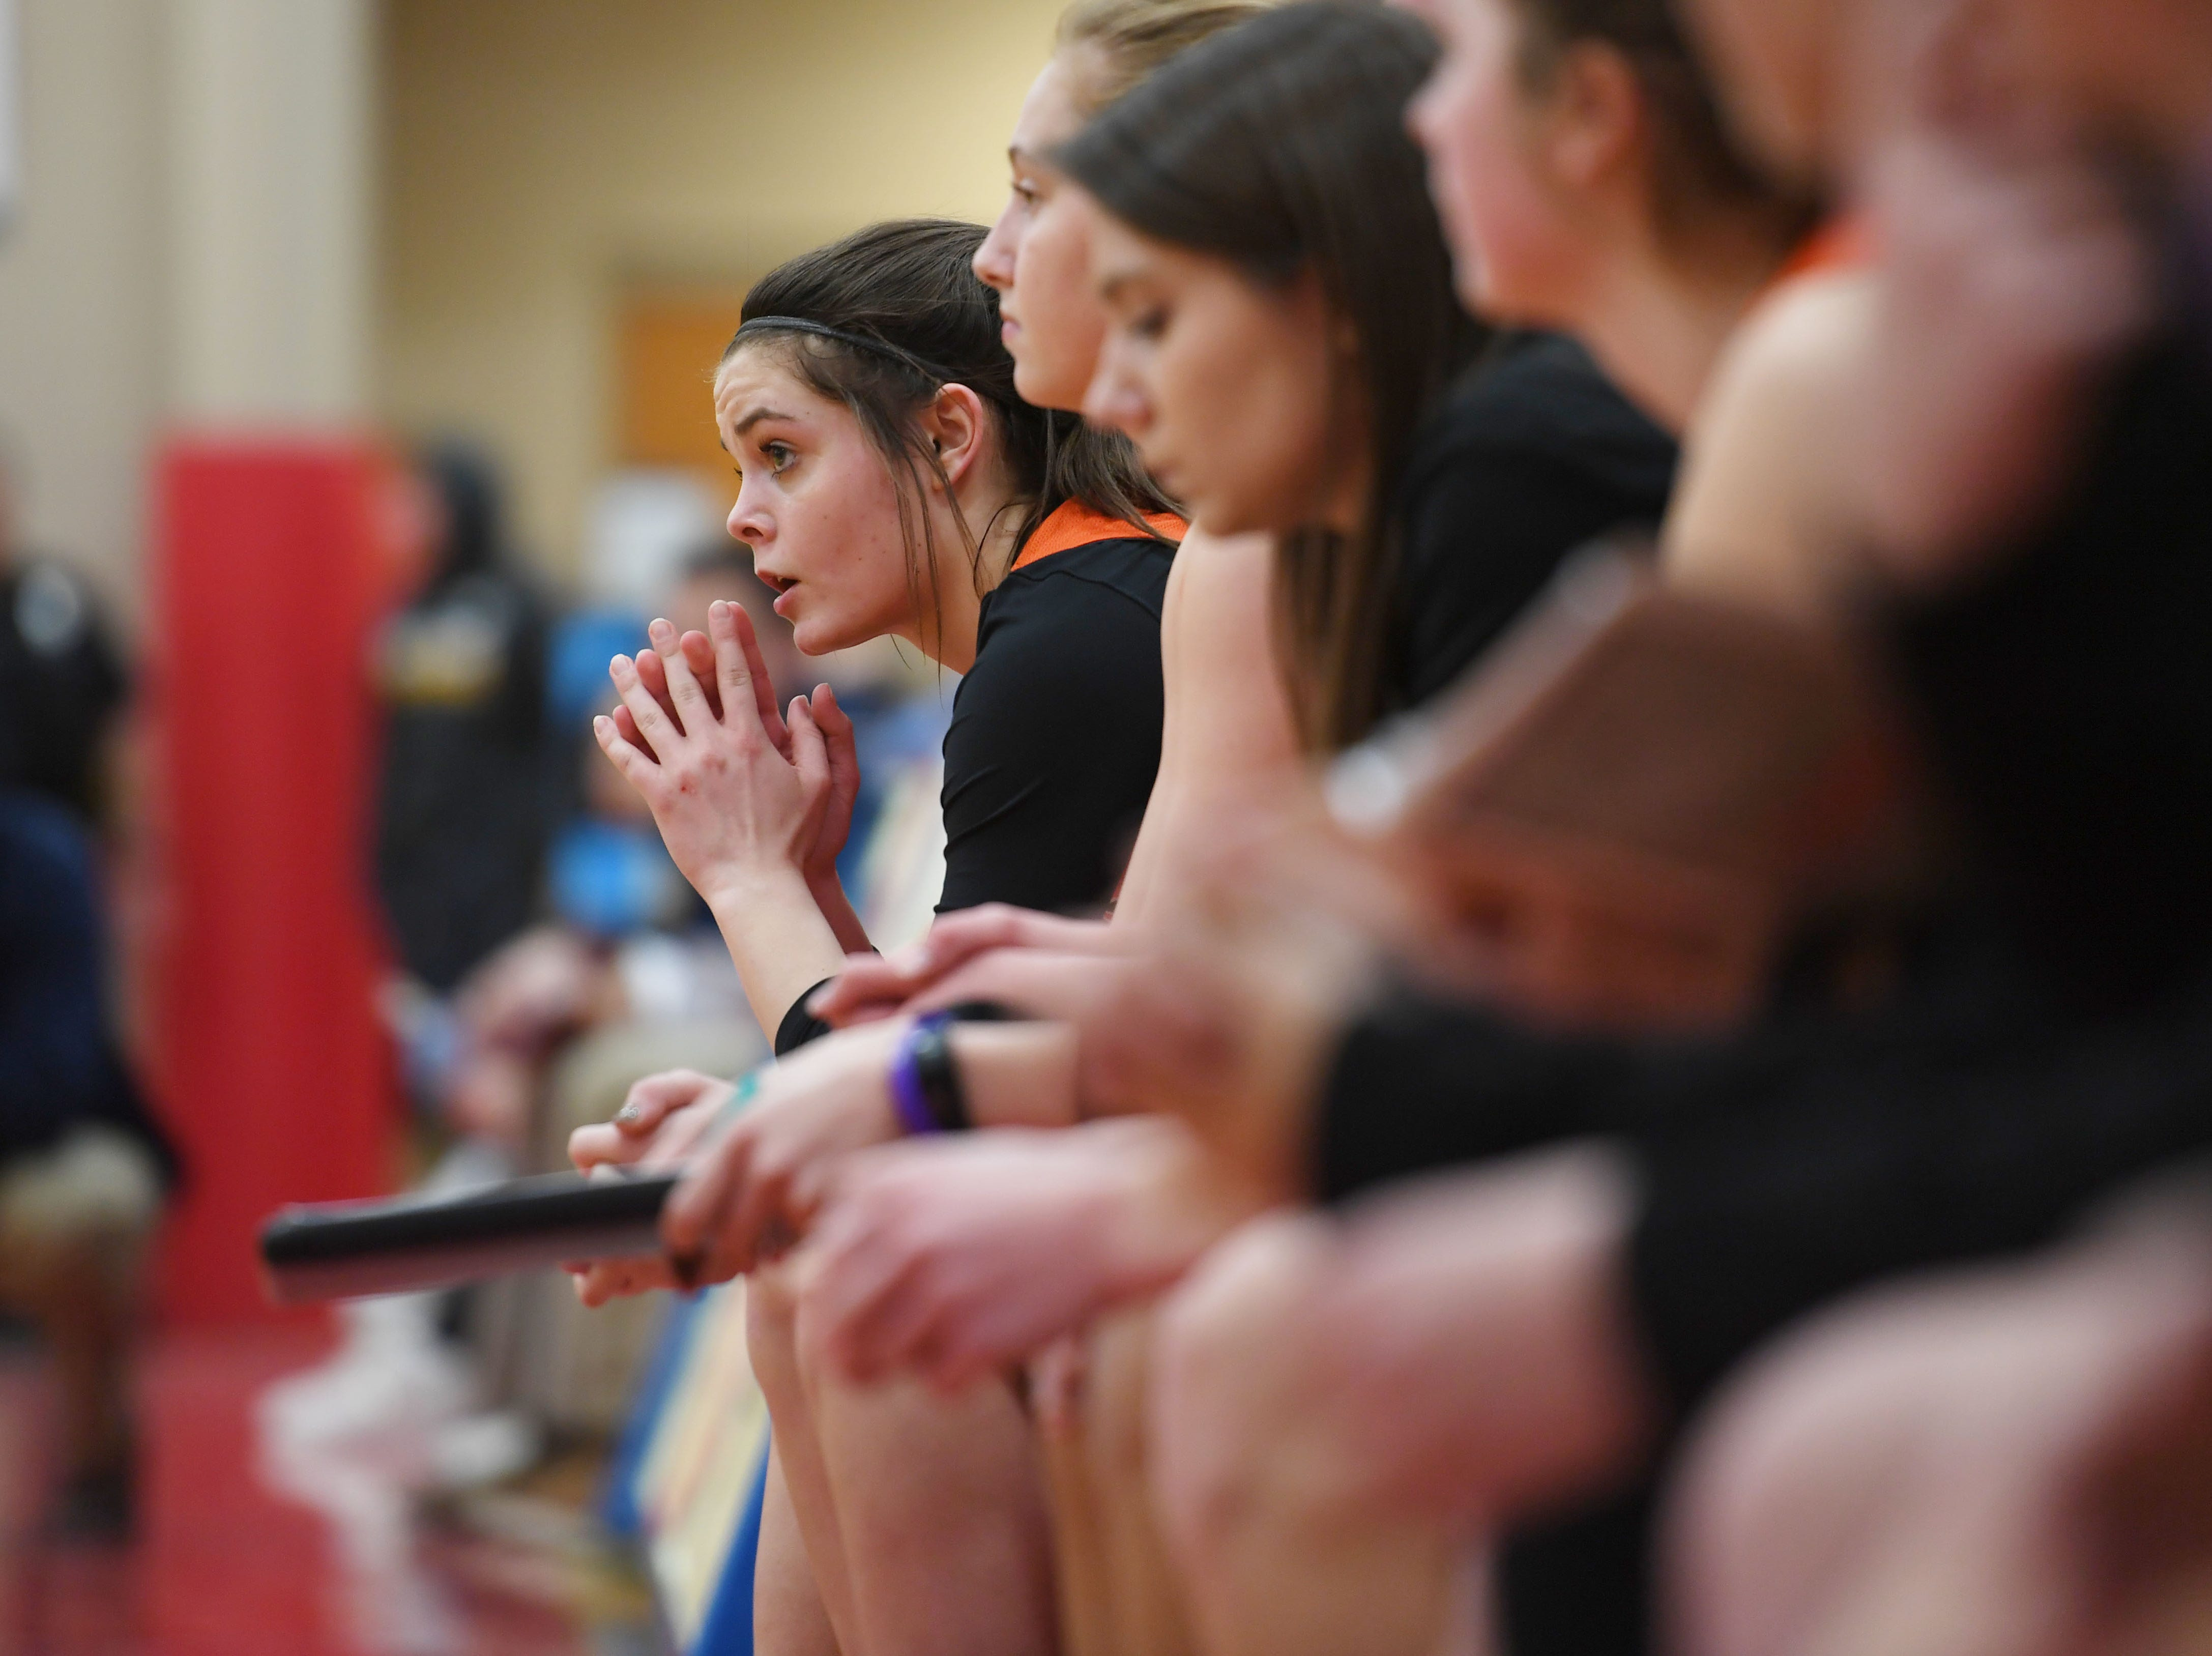 Washington players listen to a call during the game against Lincoln Thursday, Jan. 24, at Lincoln. Lincoln won 63-62 against Washington.